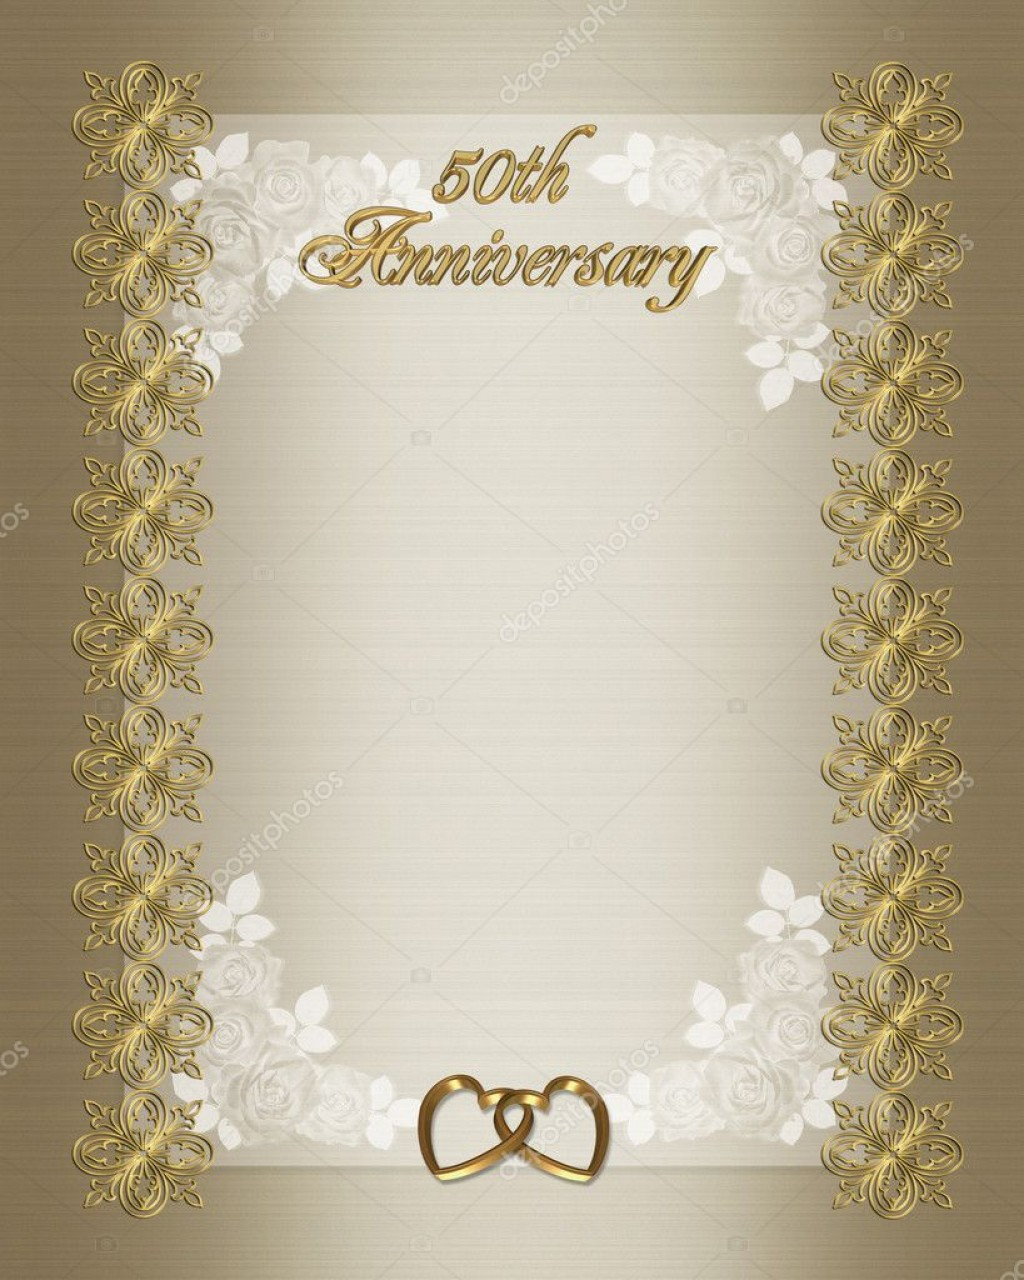 009 Top 50th Anniversary Invitation Card Template Photo  Templates FreeLarge